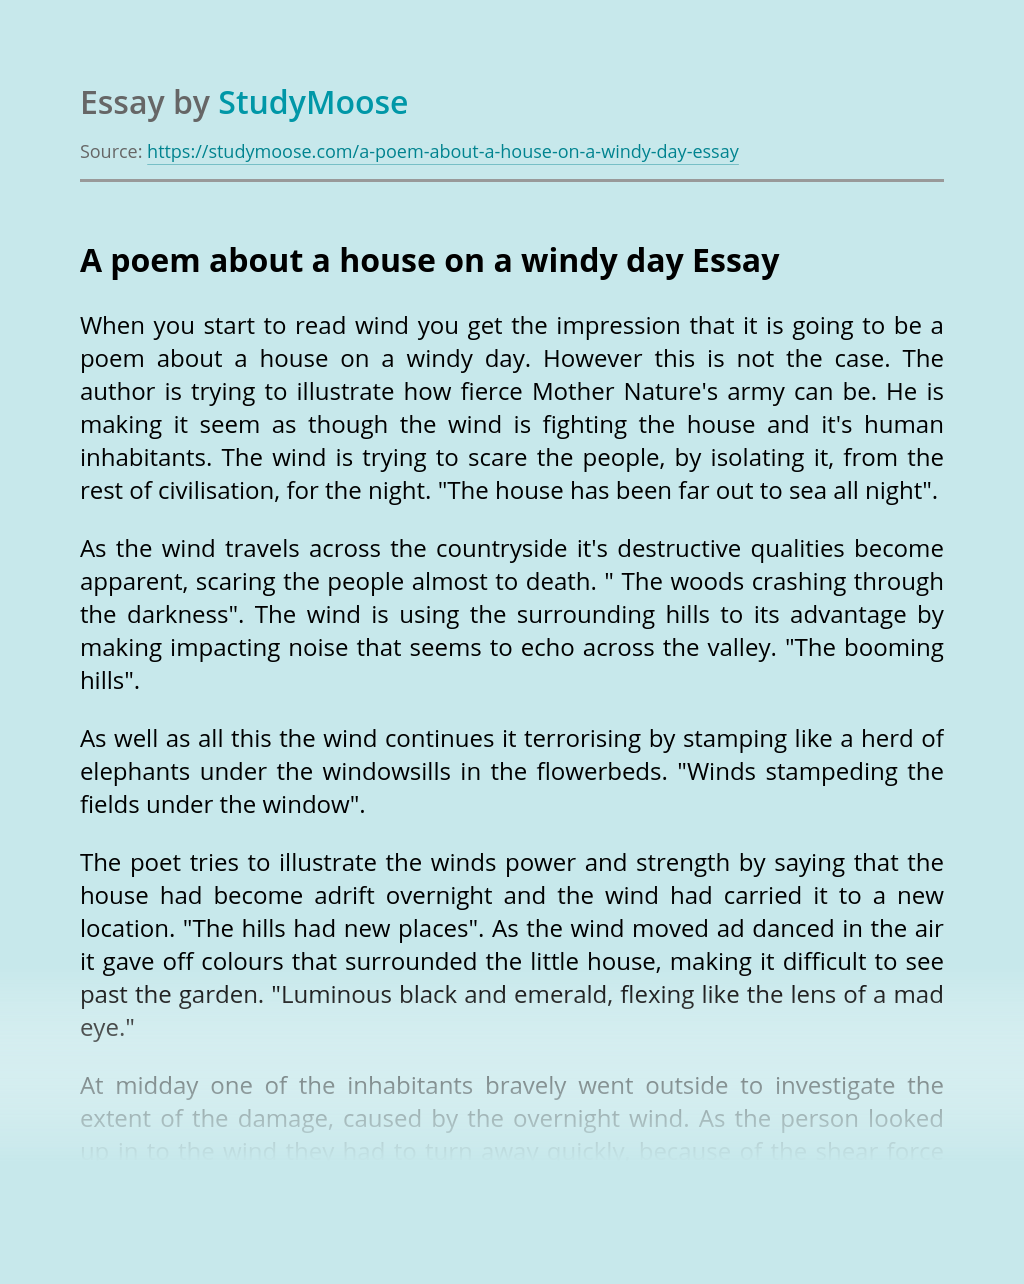 A poem about a house on a windy day